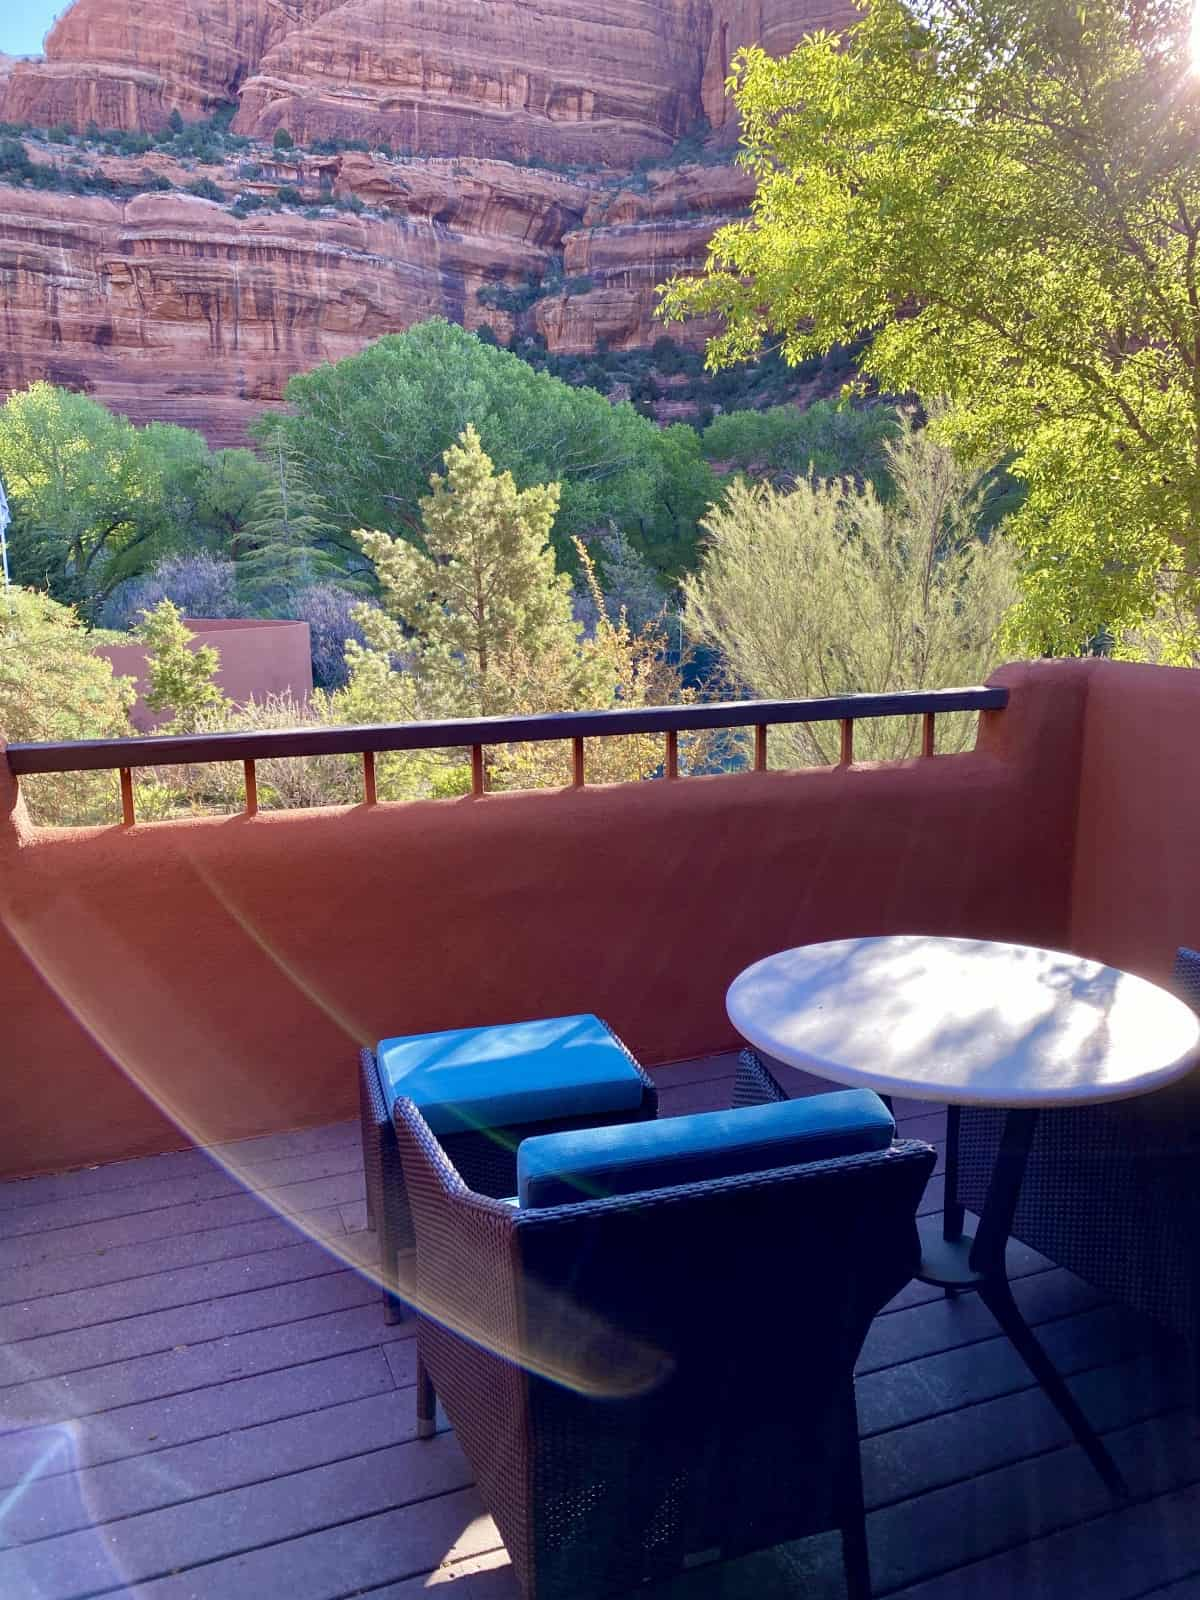 Sedona's Enchantment Resort review - I enjoyed the little private patio in my casita